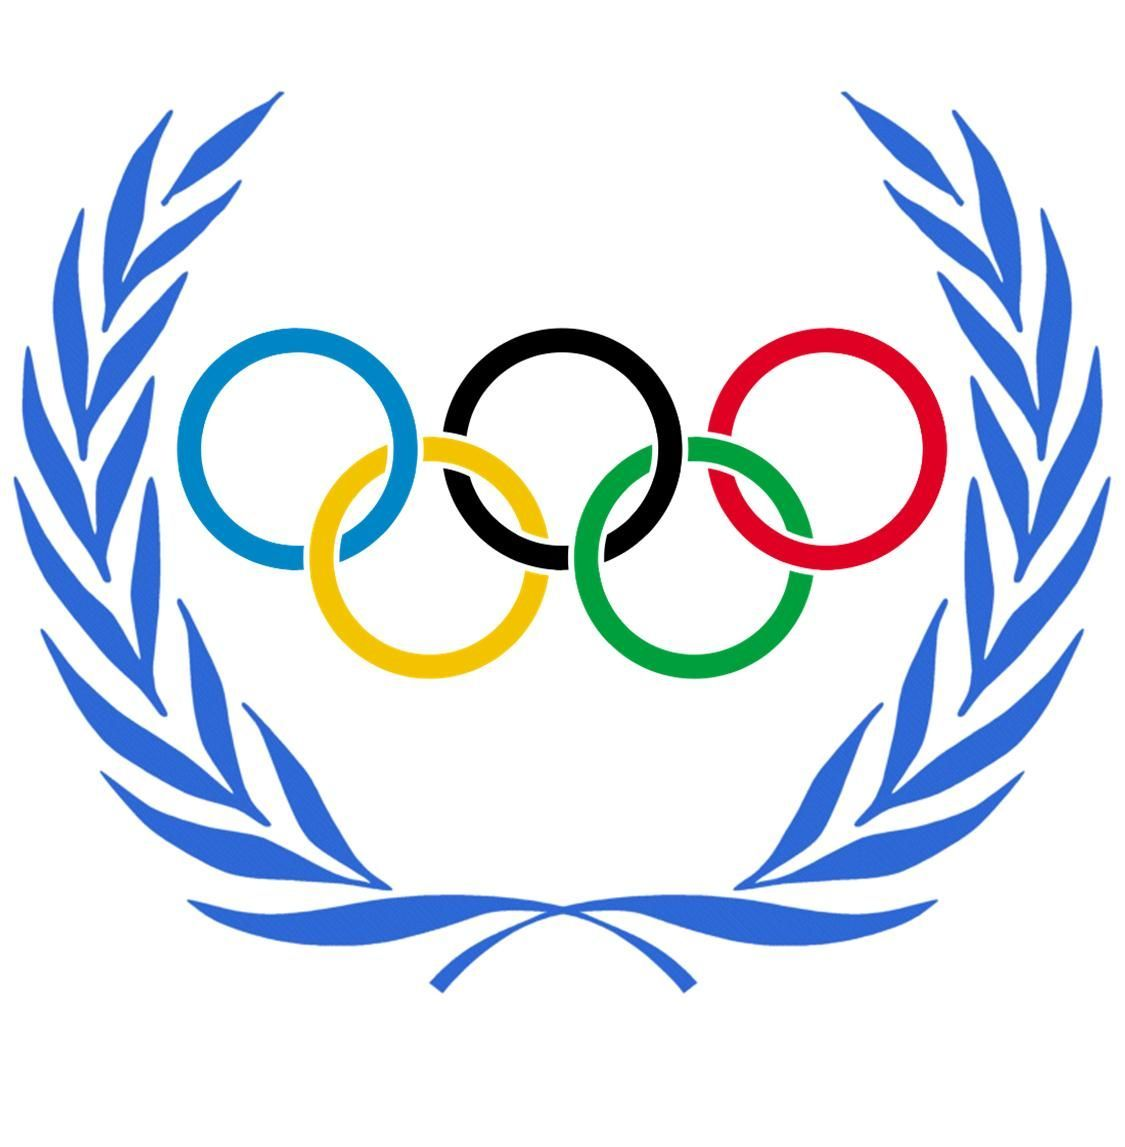 Classic Olympics Symbol Olympic Games Winter Olympic Games